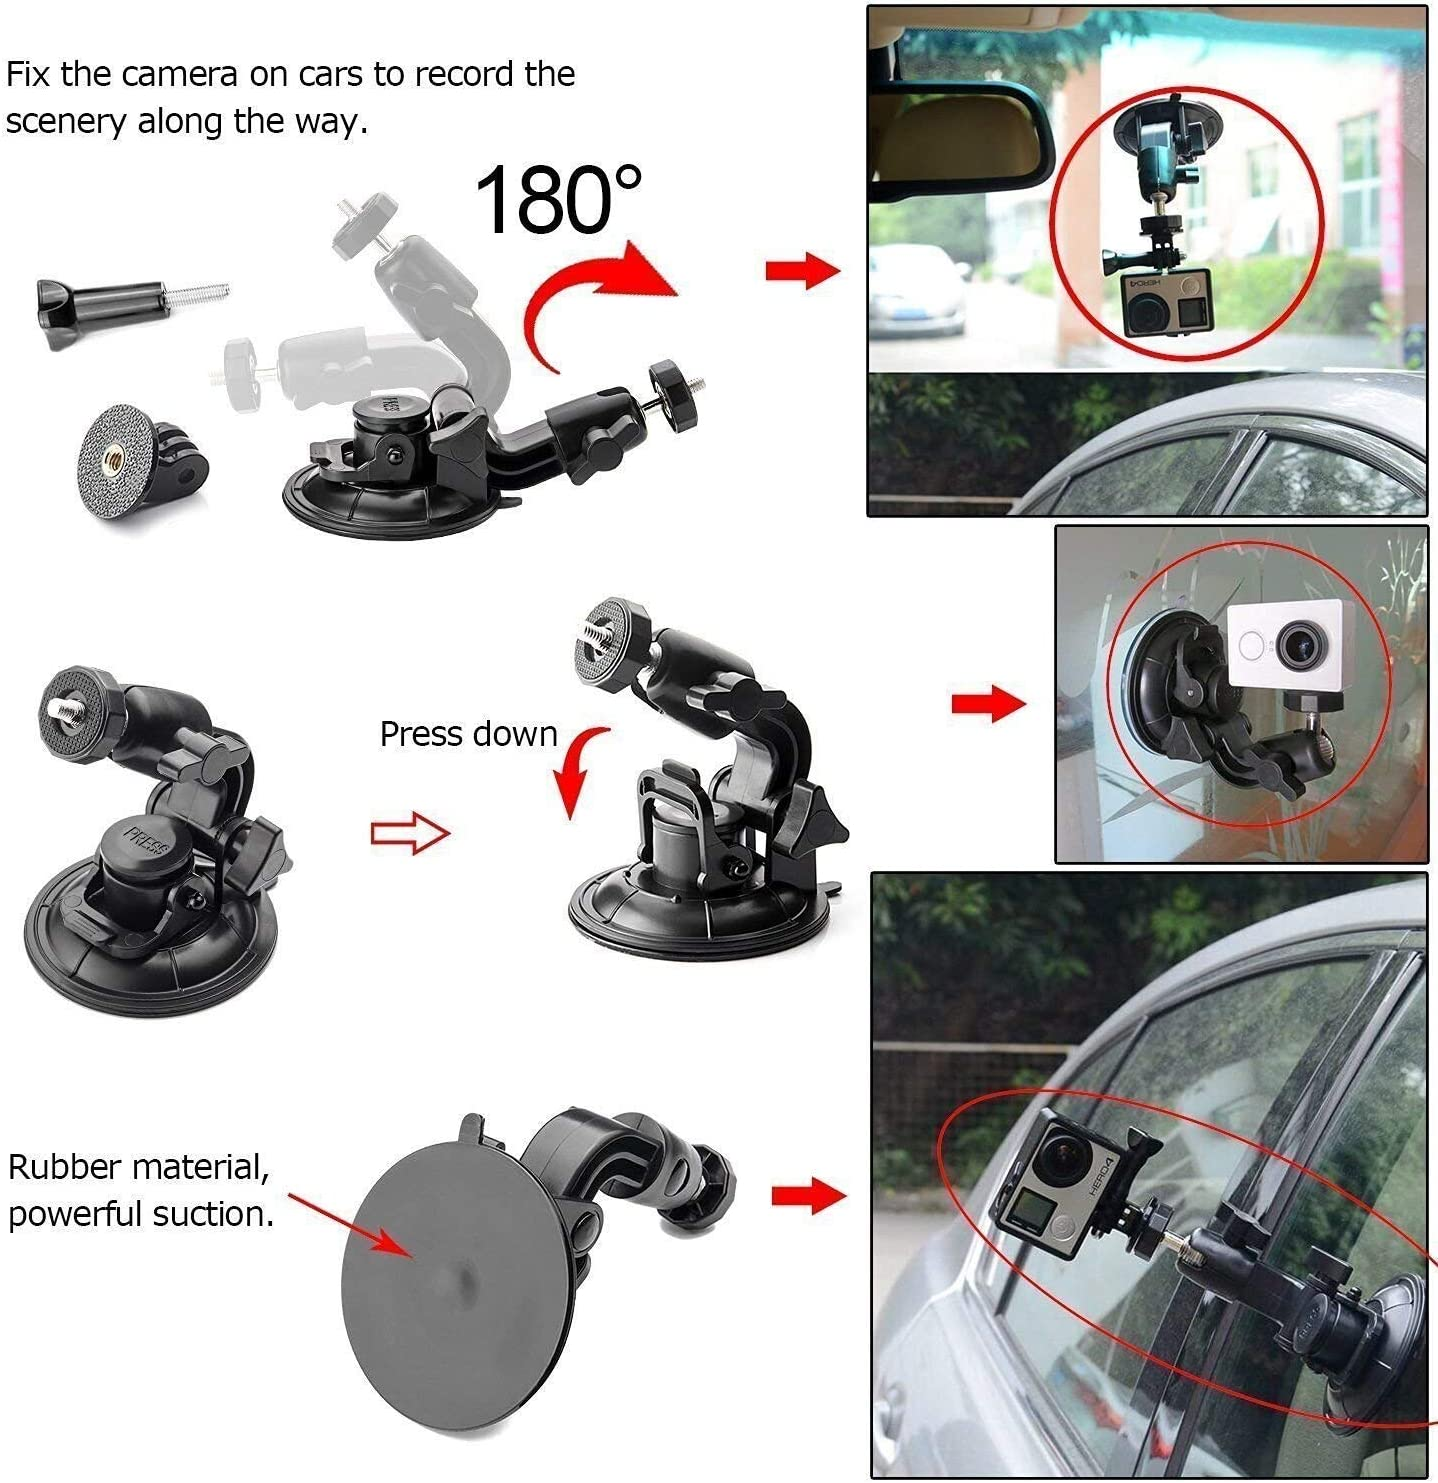 AKASO Campark Crosstour Accesories Victure Xiaomi YI 4K LITE Eyeon Large Diameter 9.5cm Car Suction Cup Mount Windscreen Windshield Dashboard Bonnet for GoPro Hero 2018 7 6 5 4 Apeman